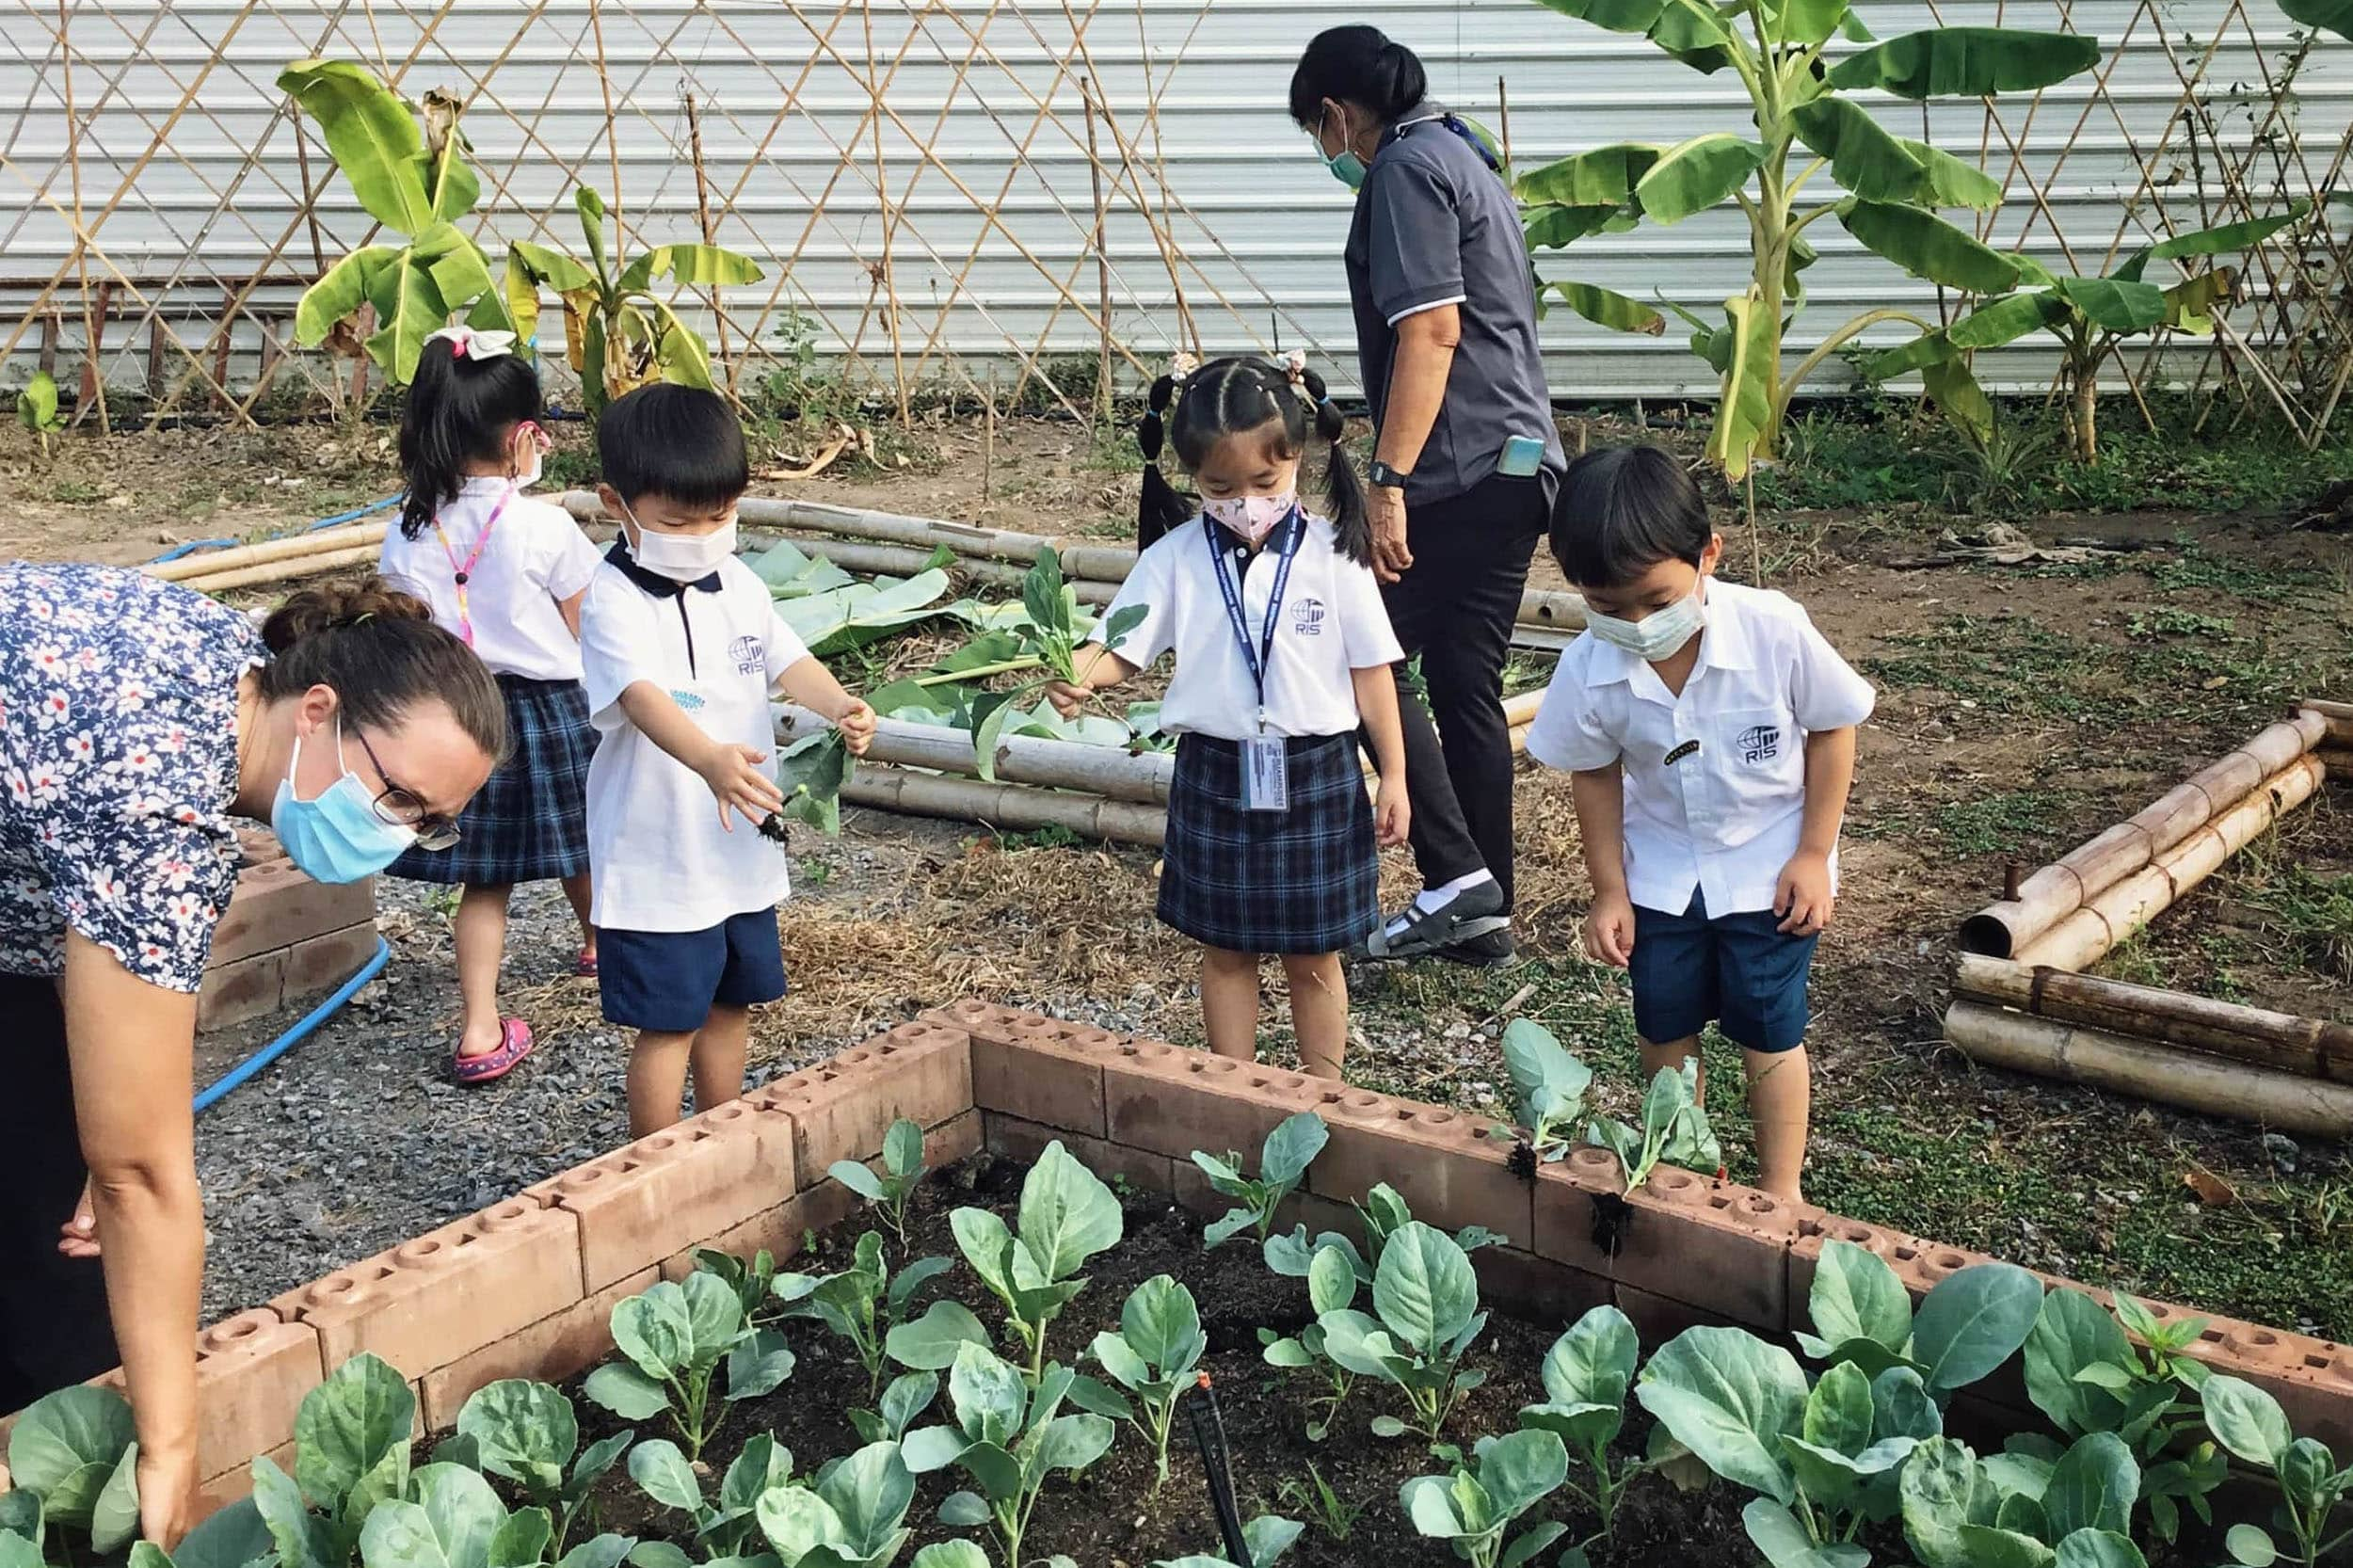 RIS Early Years' seed-to-table program is a natural living classroom with a greenhouse and pesticide-free planting beds. The program fosters a lifelong appreciation of fresh, healthy foods.